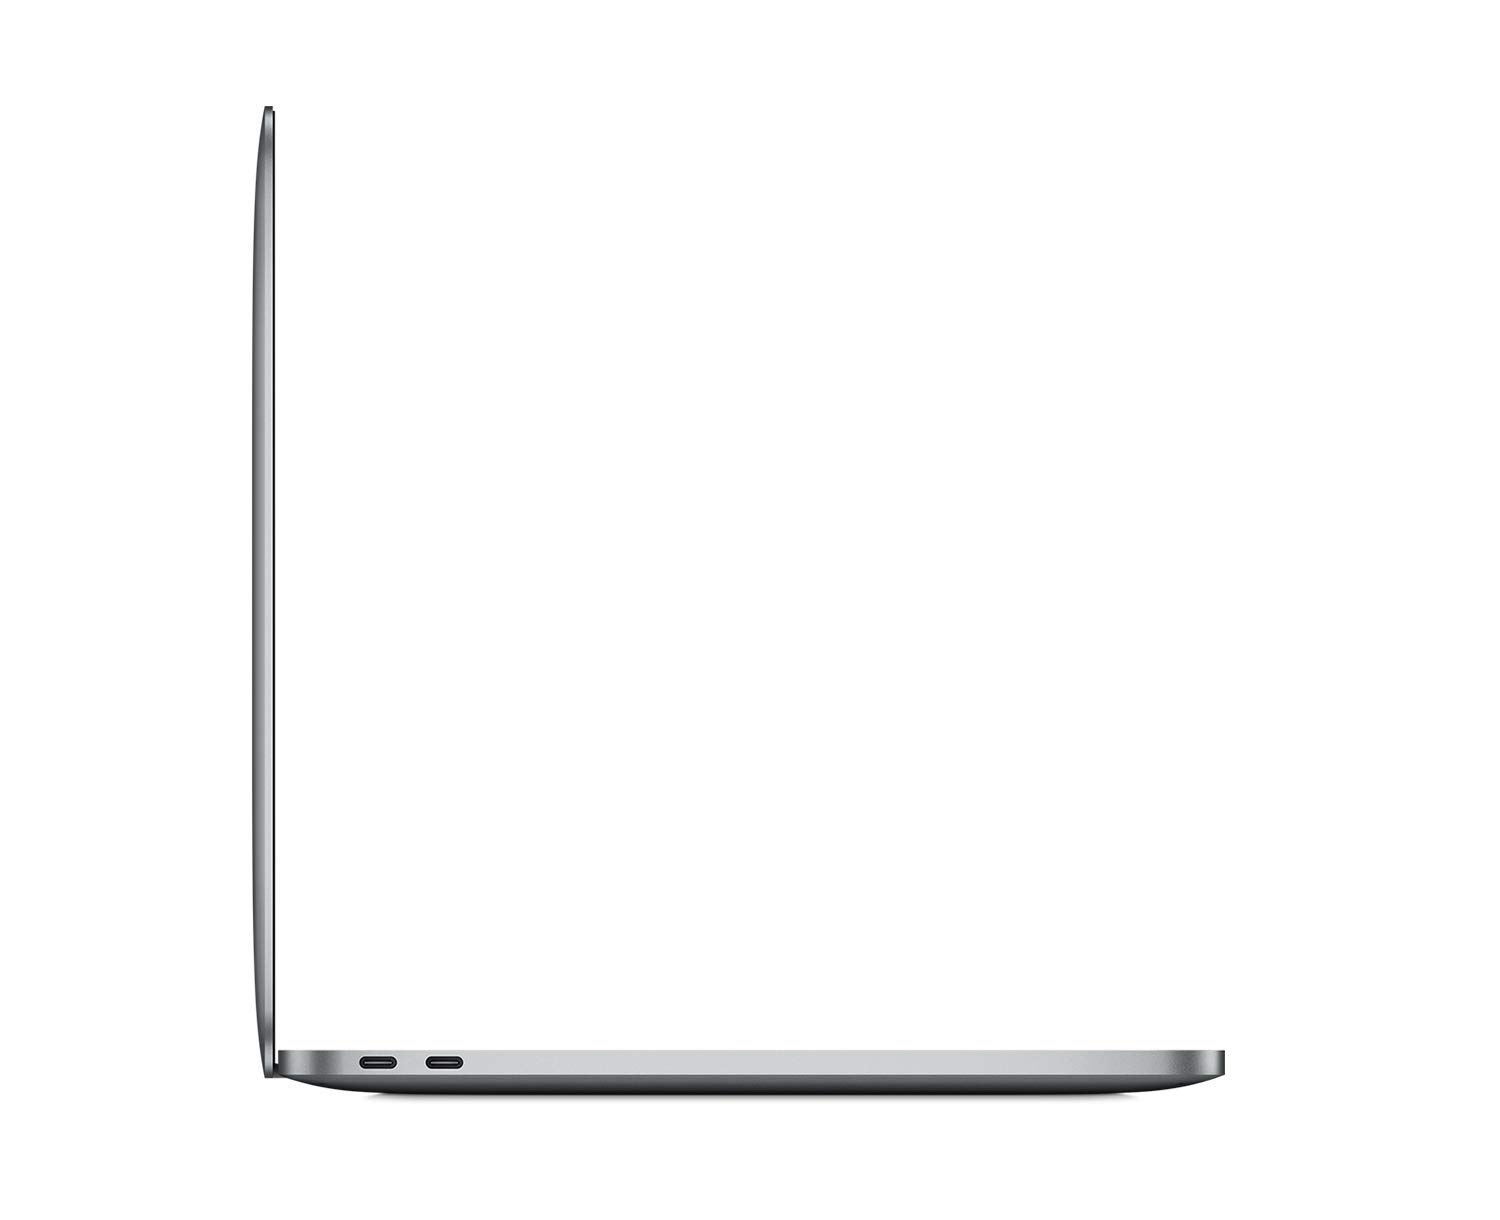 Apple MacBook Pro (13'' Retina, Touch Bar, 2.3GHz Quad-Core Intel Core i5, 8GB RAM, 512GB SSD) - Space Gray (Latest Model) by Apple (Image #2)